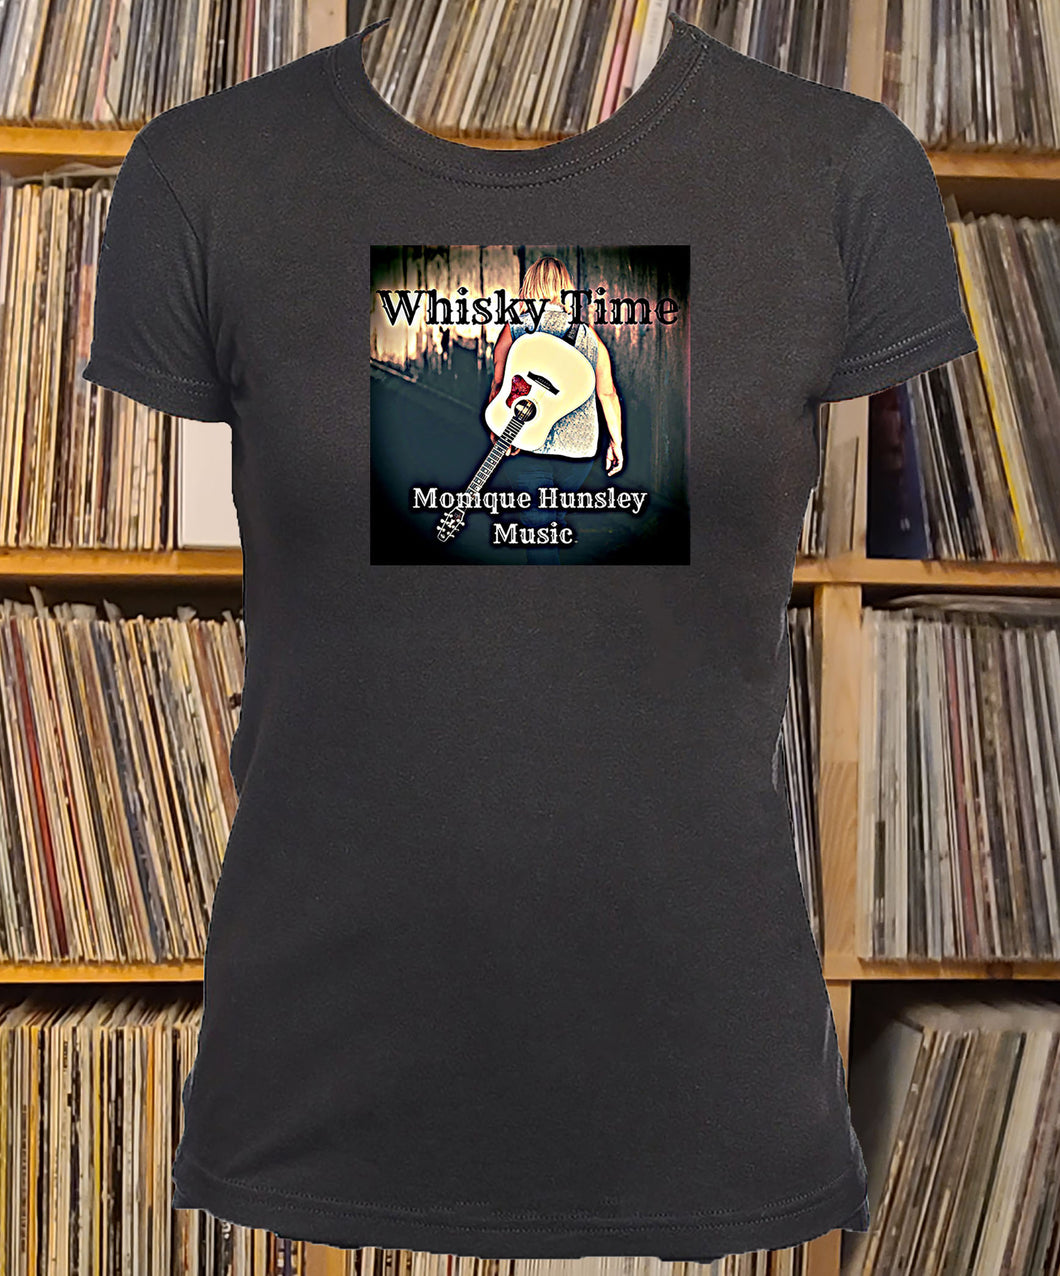 Monique Hunsley Whisky Time Ladies T-Shirt